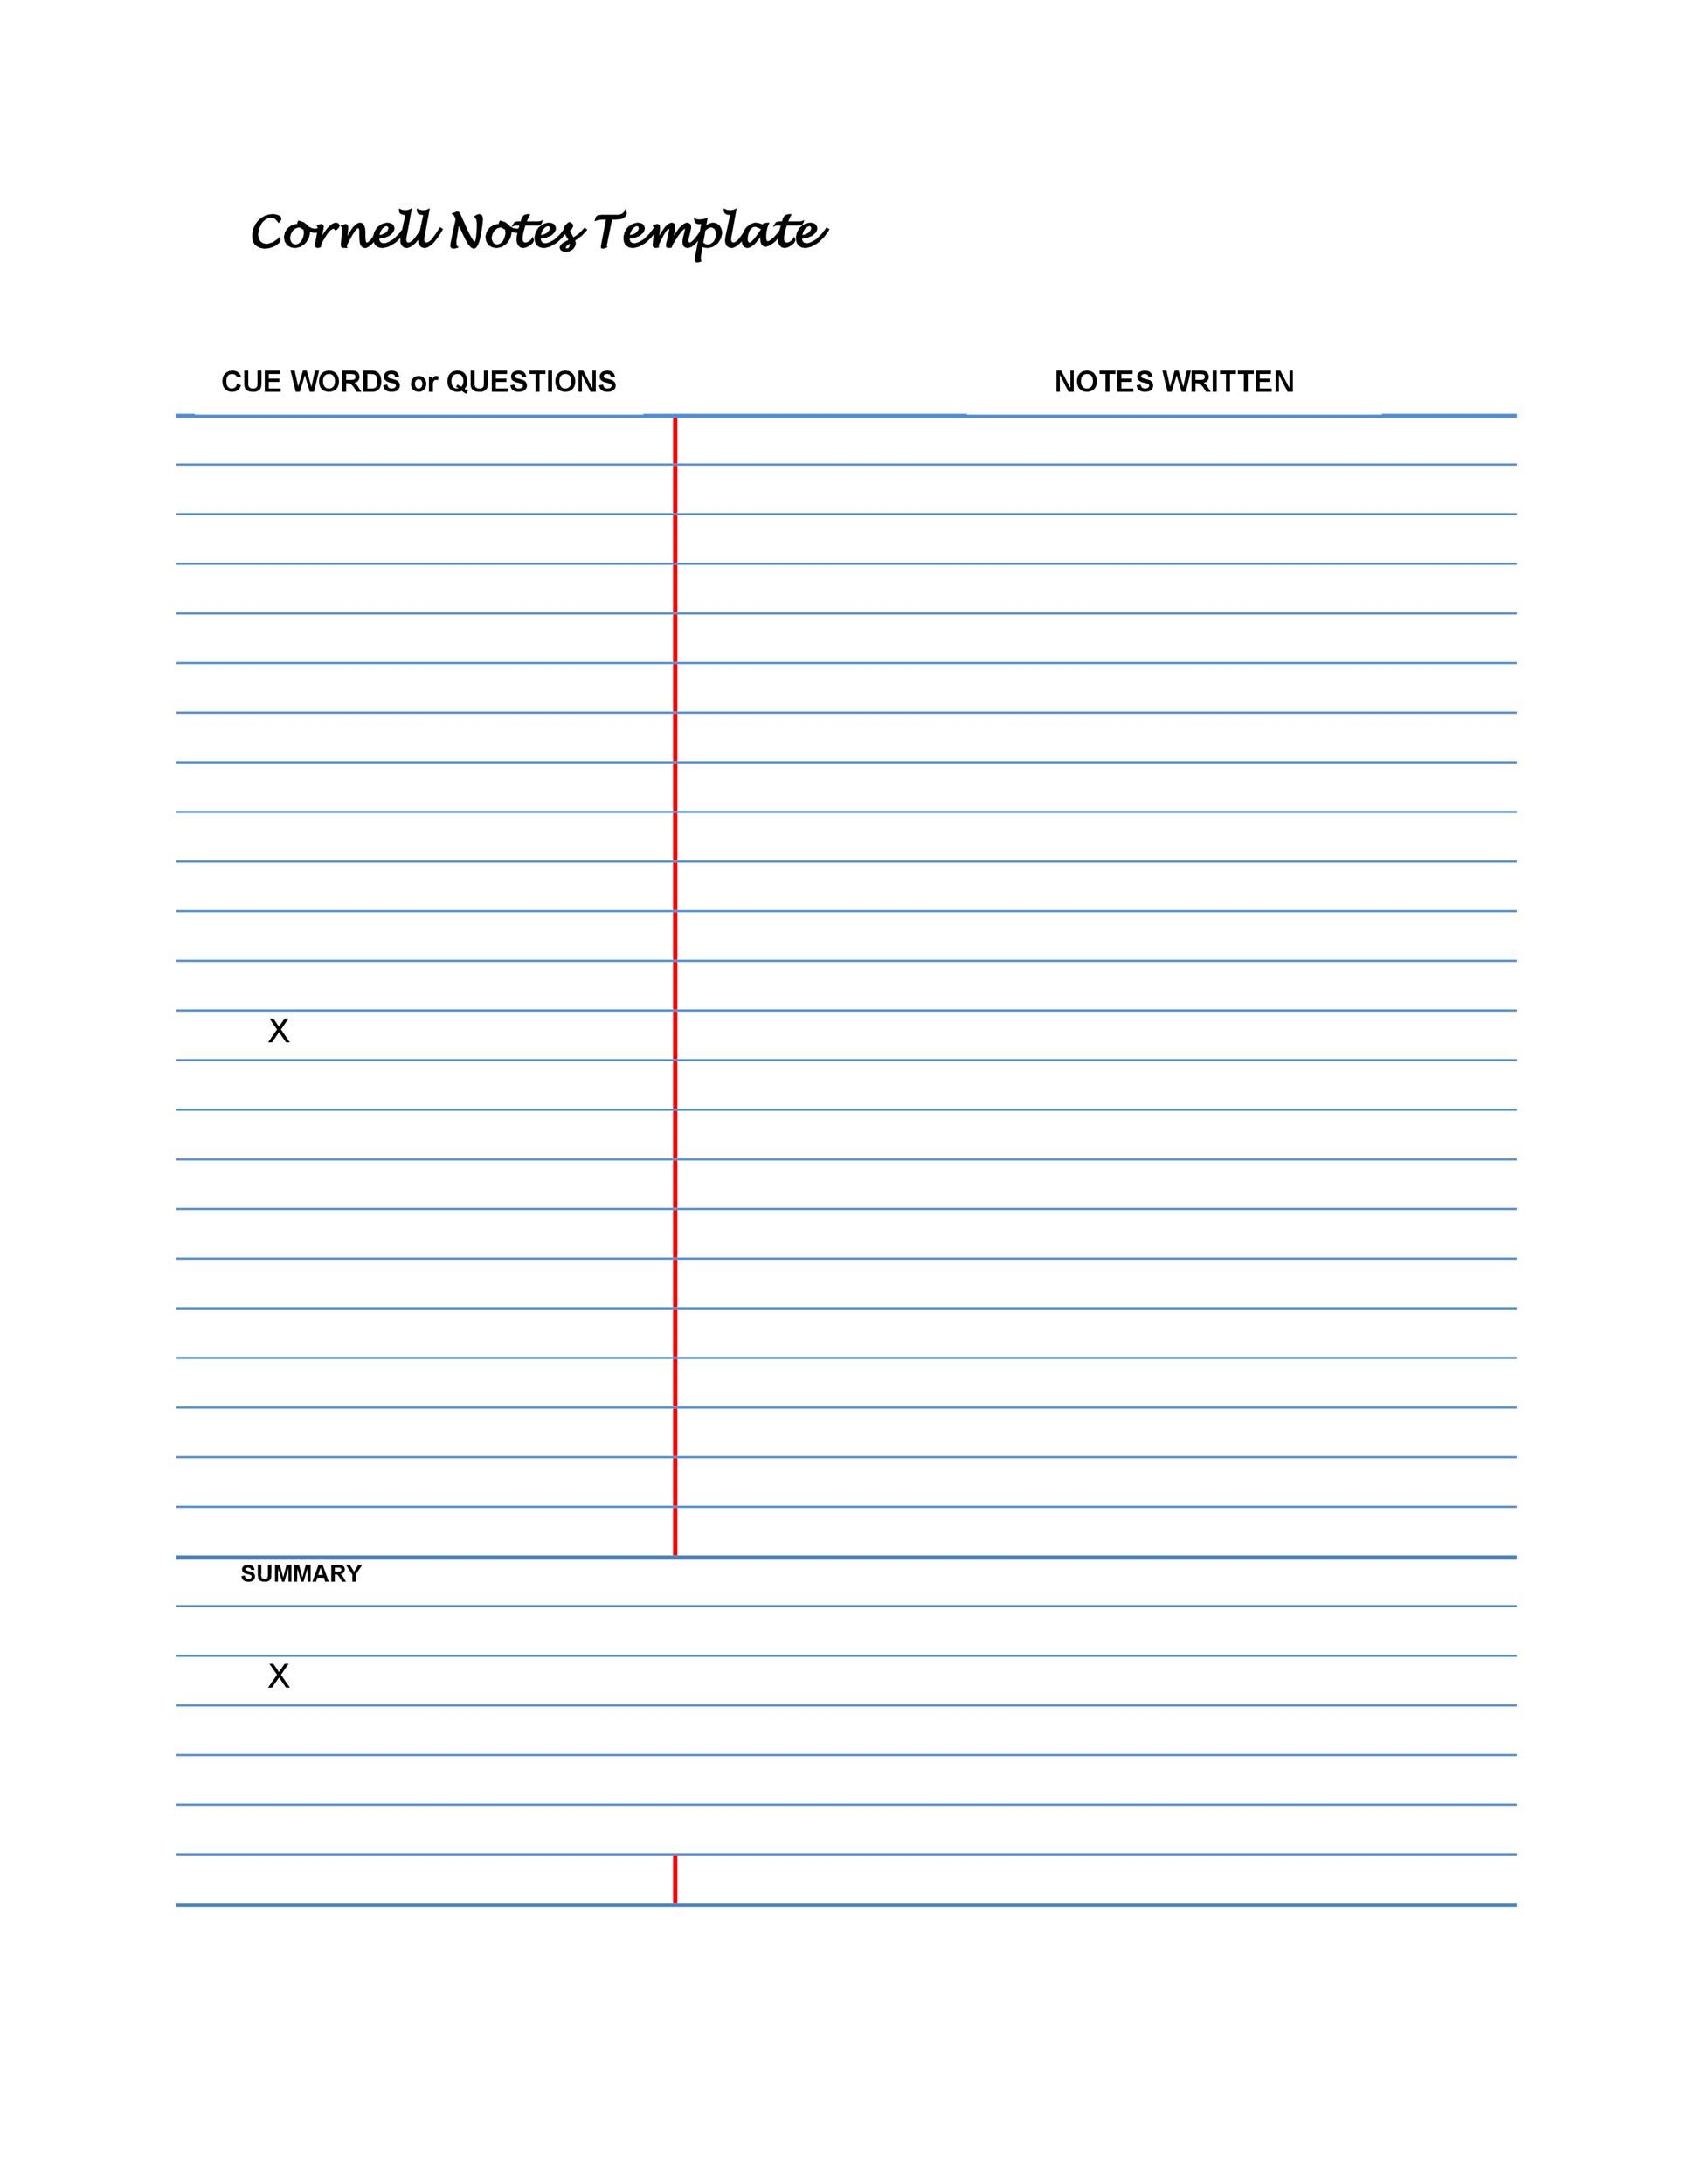 Cornell Note Template Printable That Are Invaluable